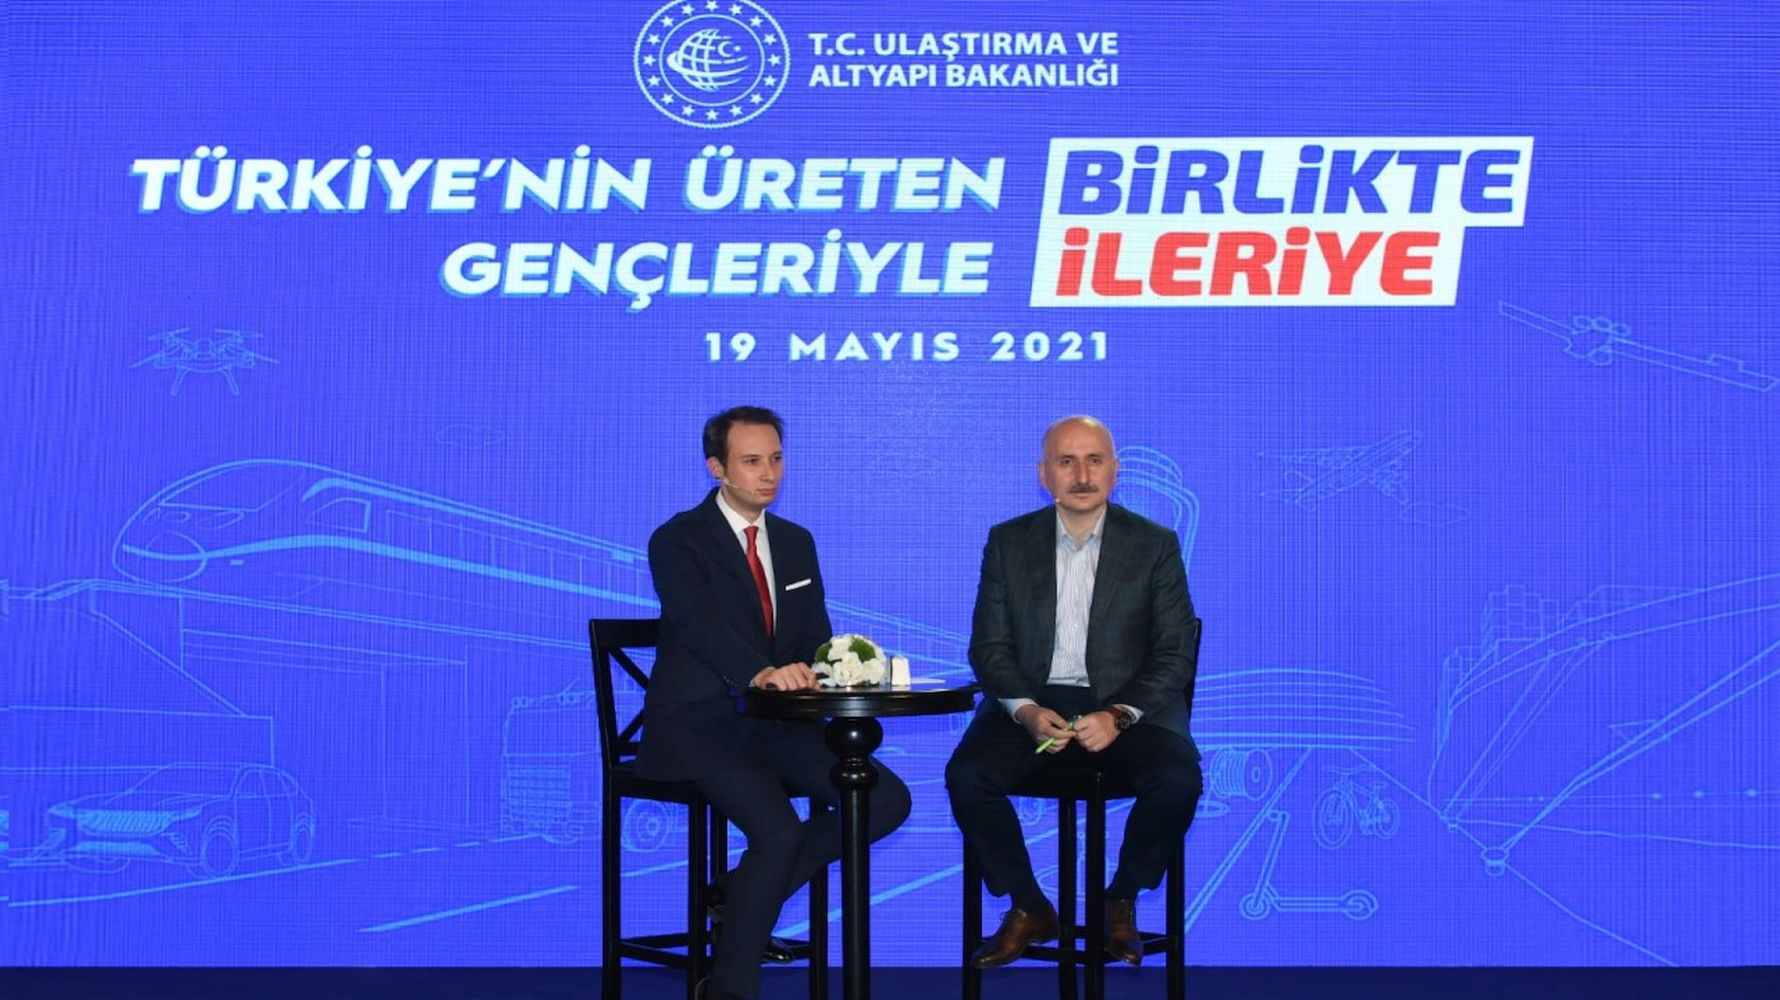 transport minister talked about karaismailoglu channel istanbul project